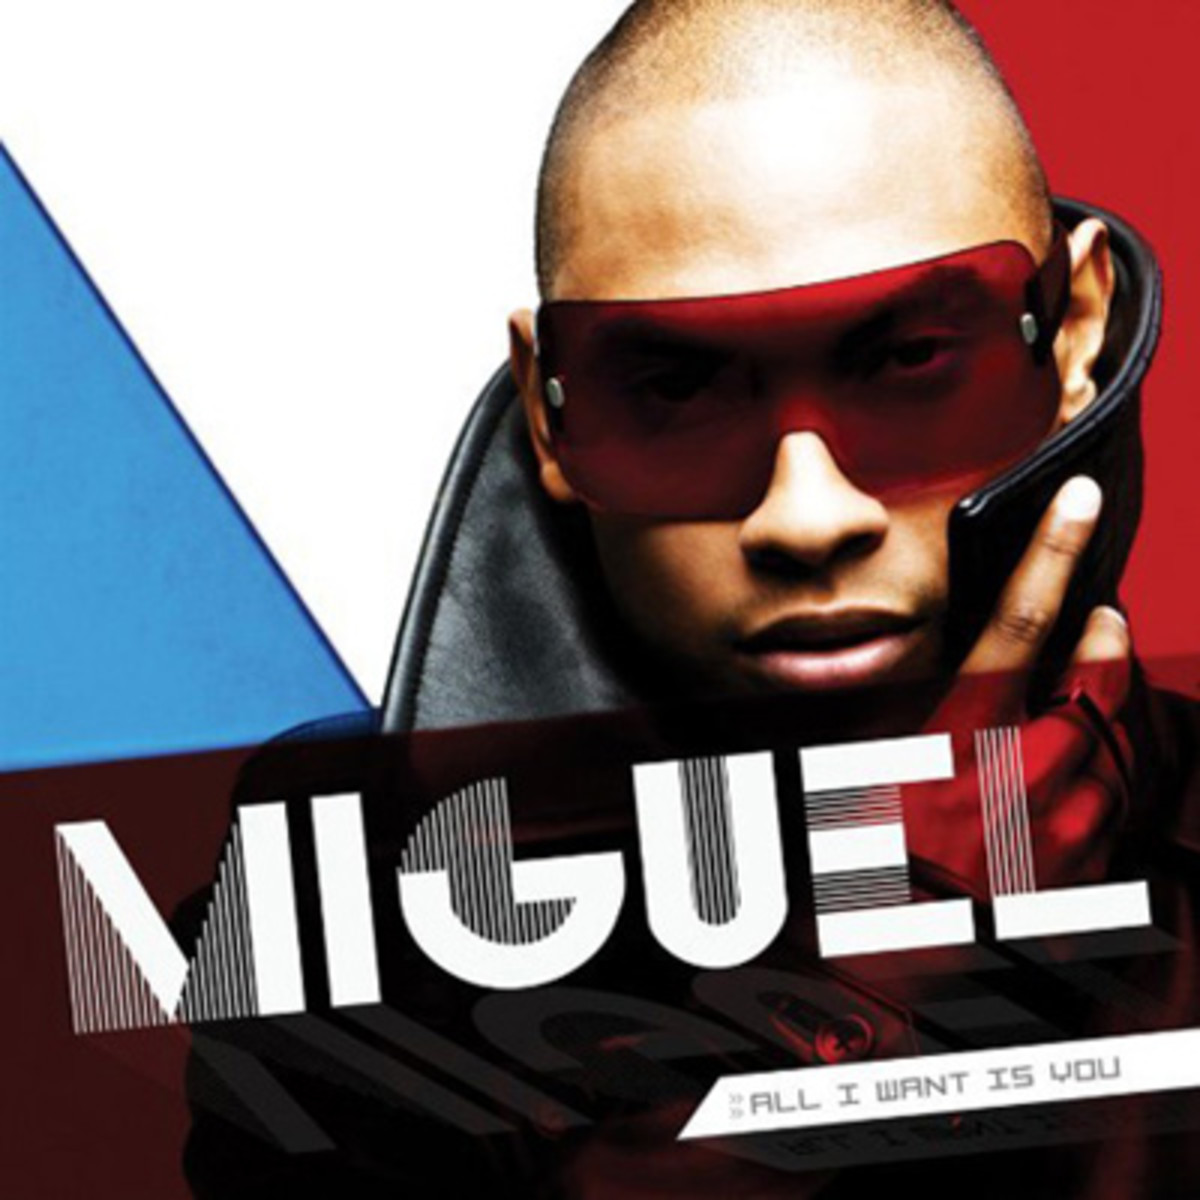 miguel-all-i-want-is-you.jpg